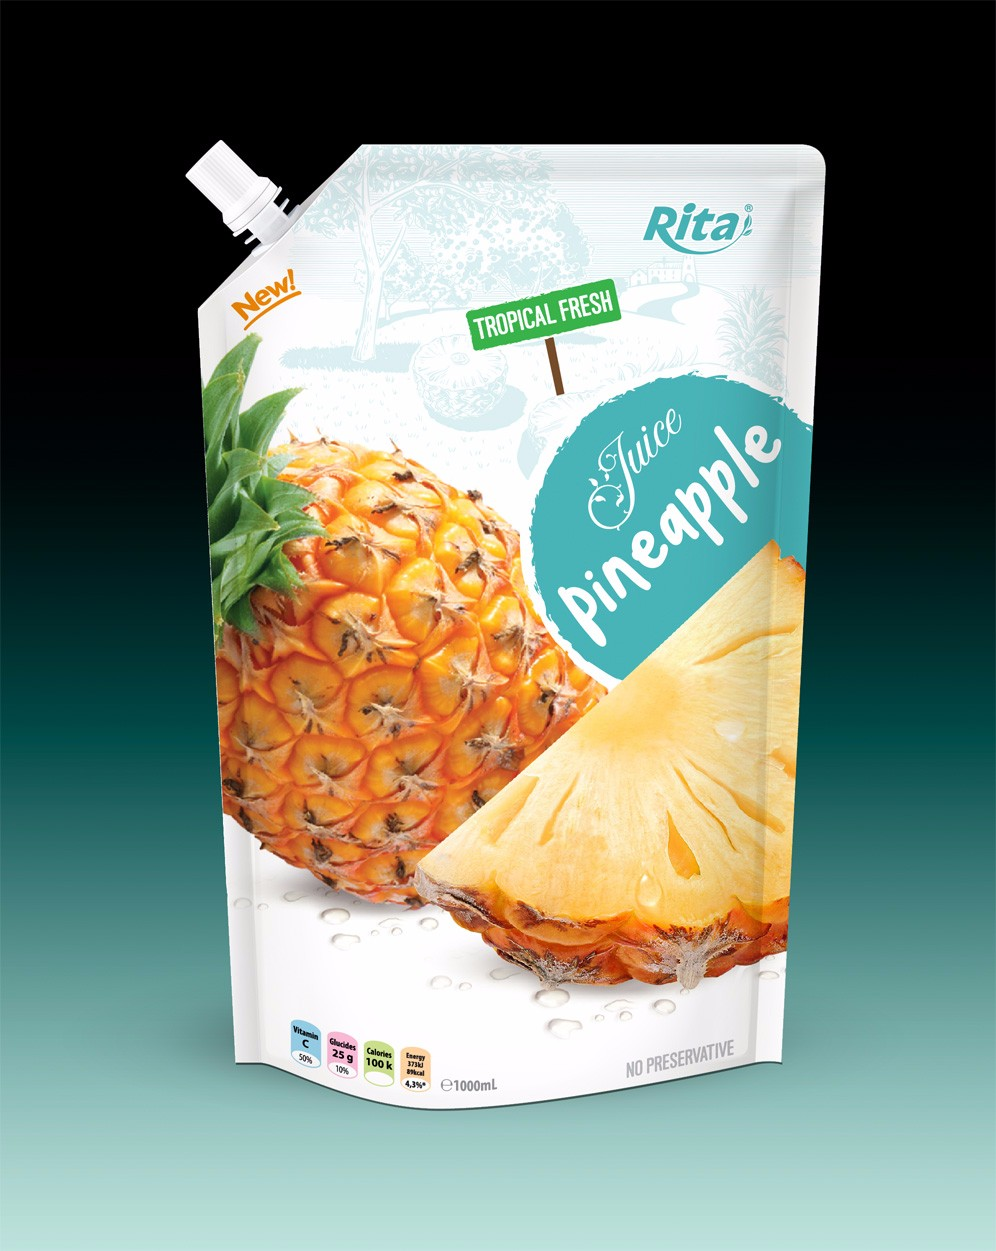 Private label pineapple juice in bag